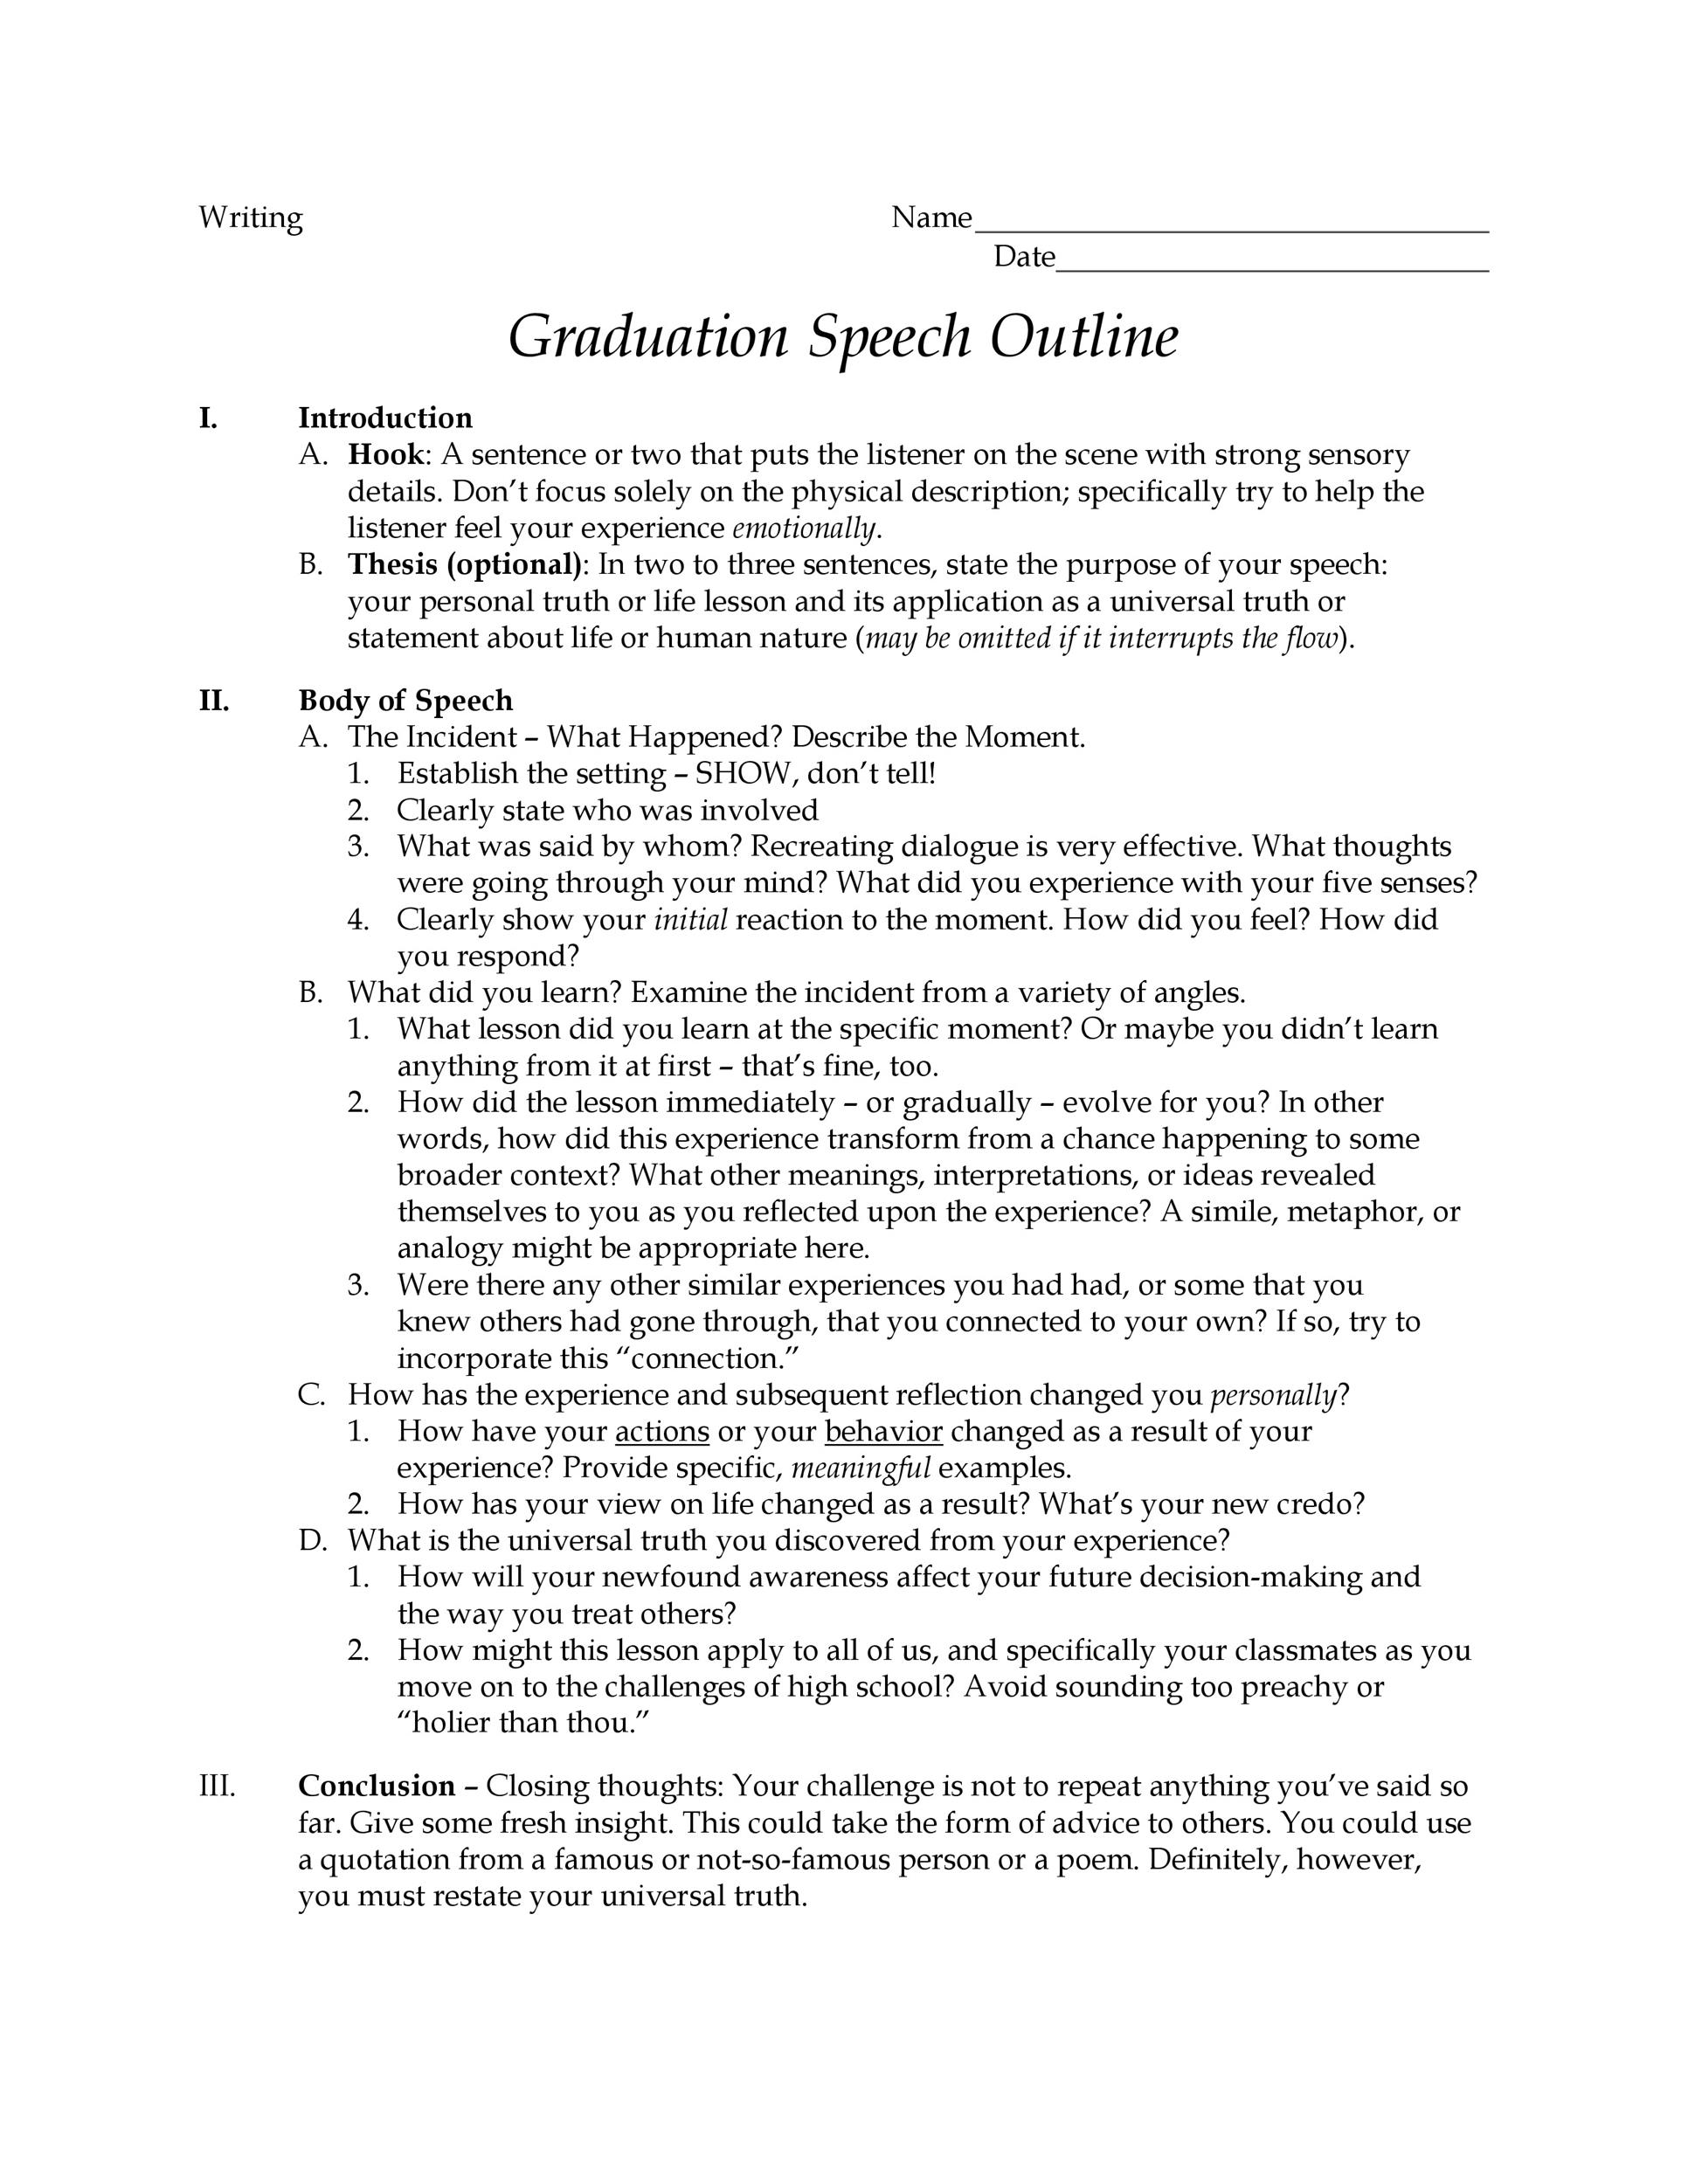 Free graduation speech example 28